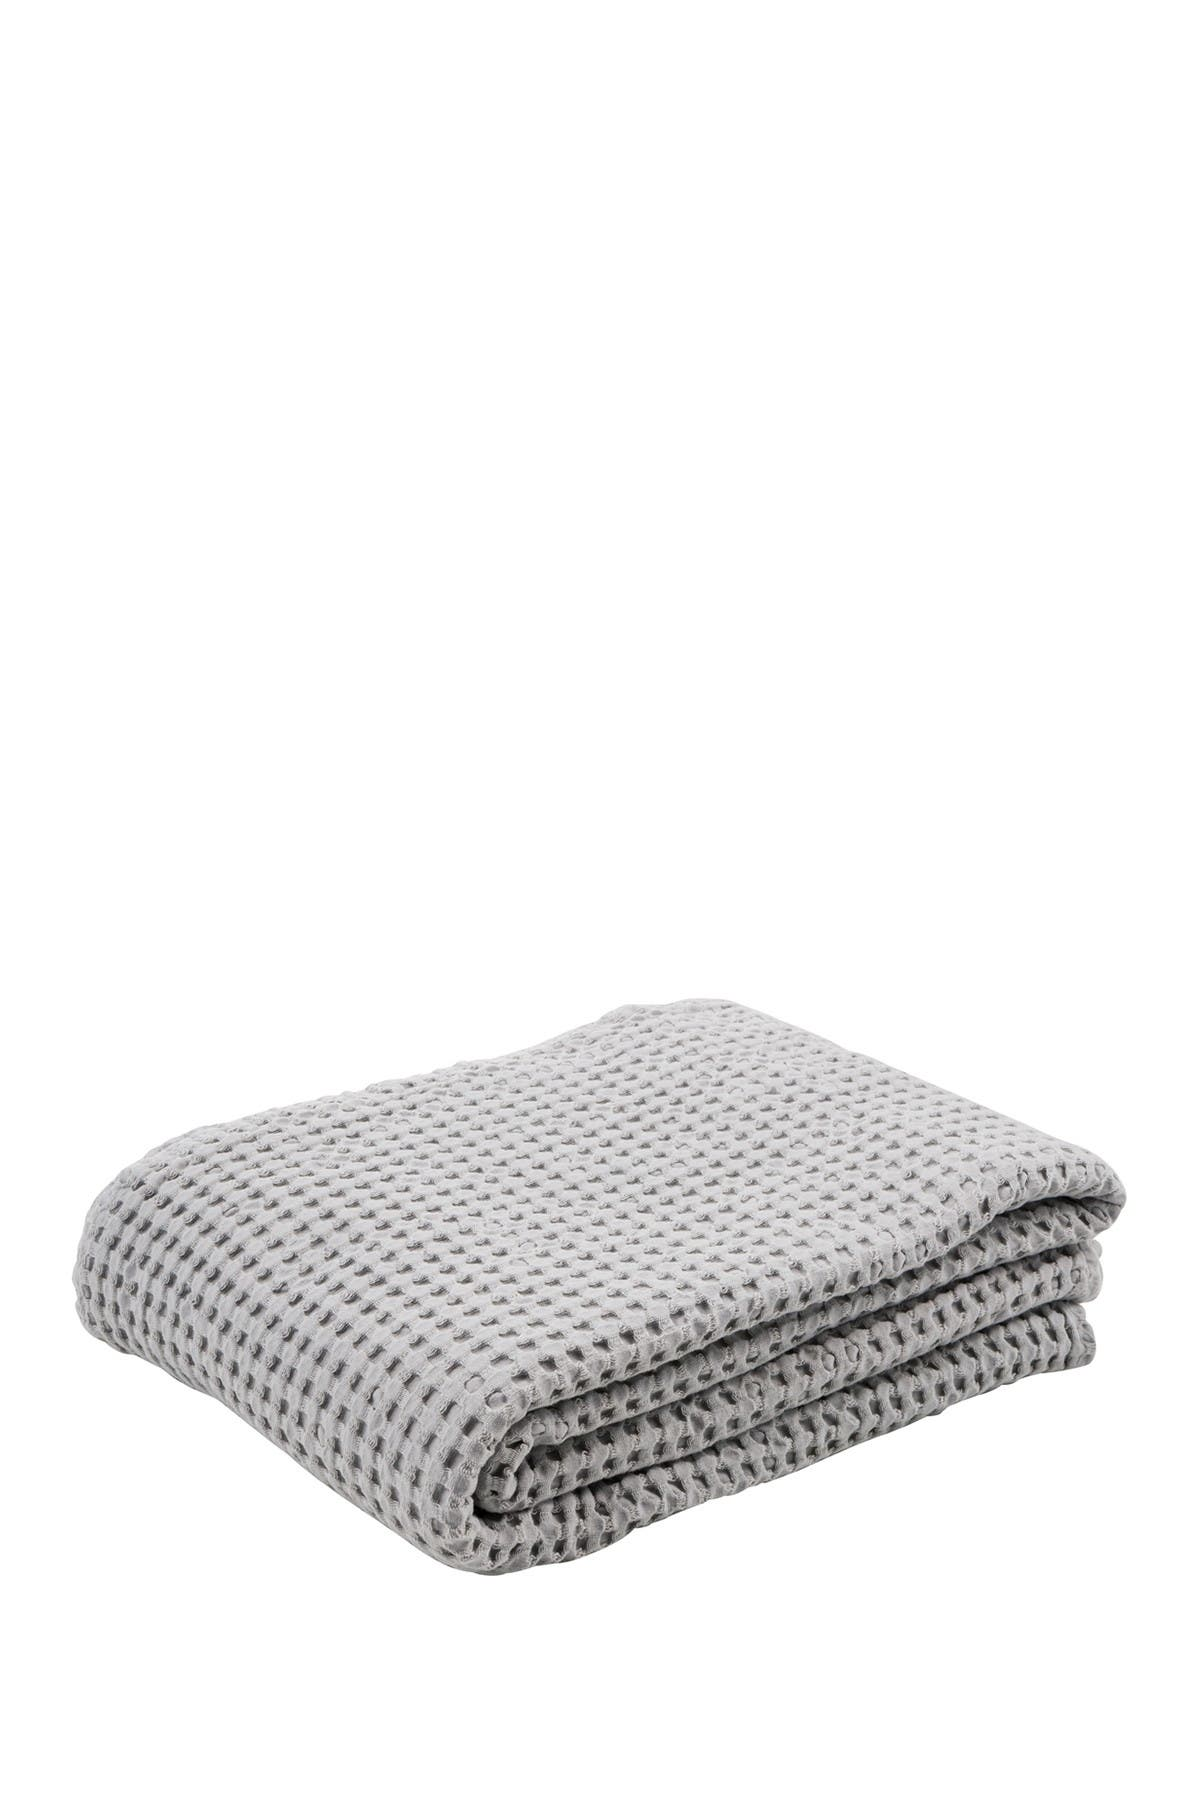 Image of EIGHTMOOD Stone Grey Waffle Throw